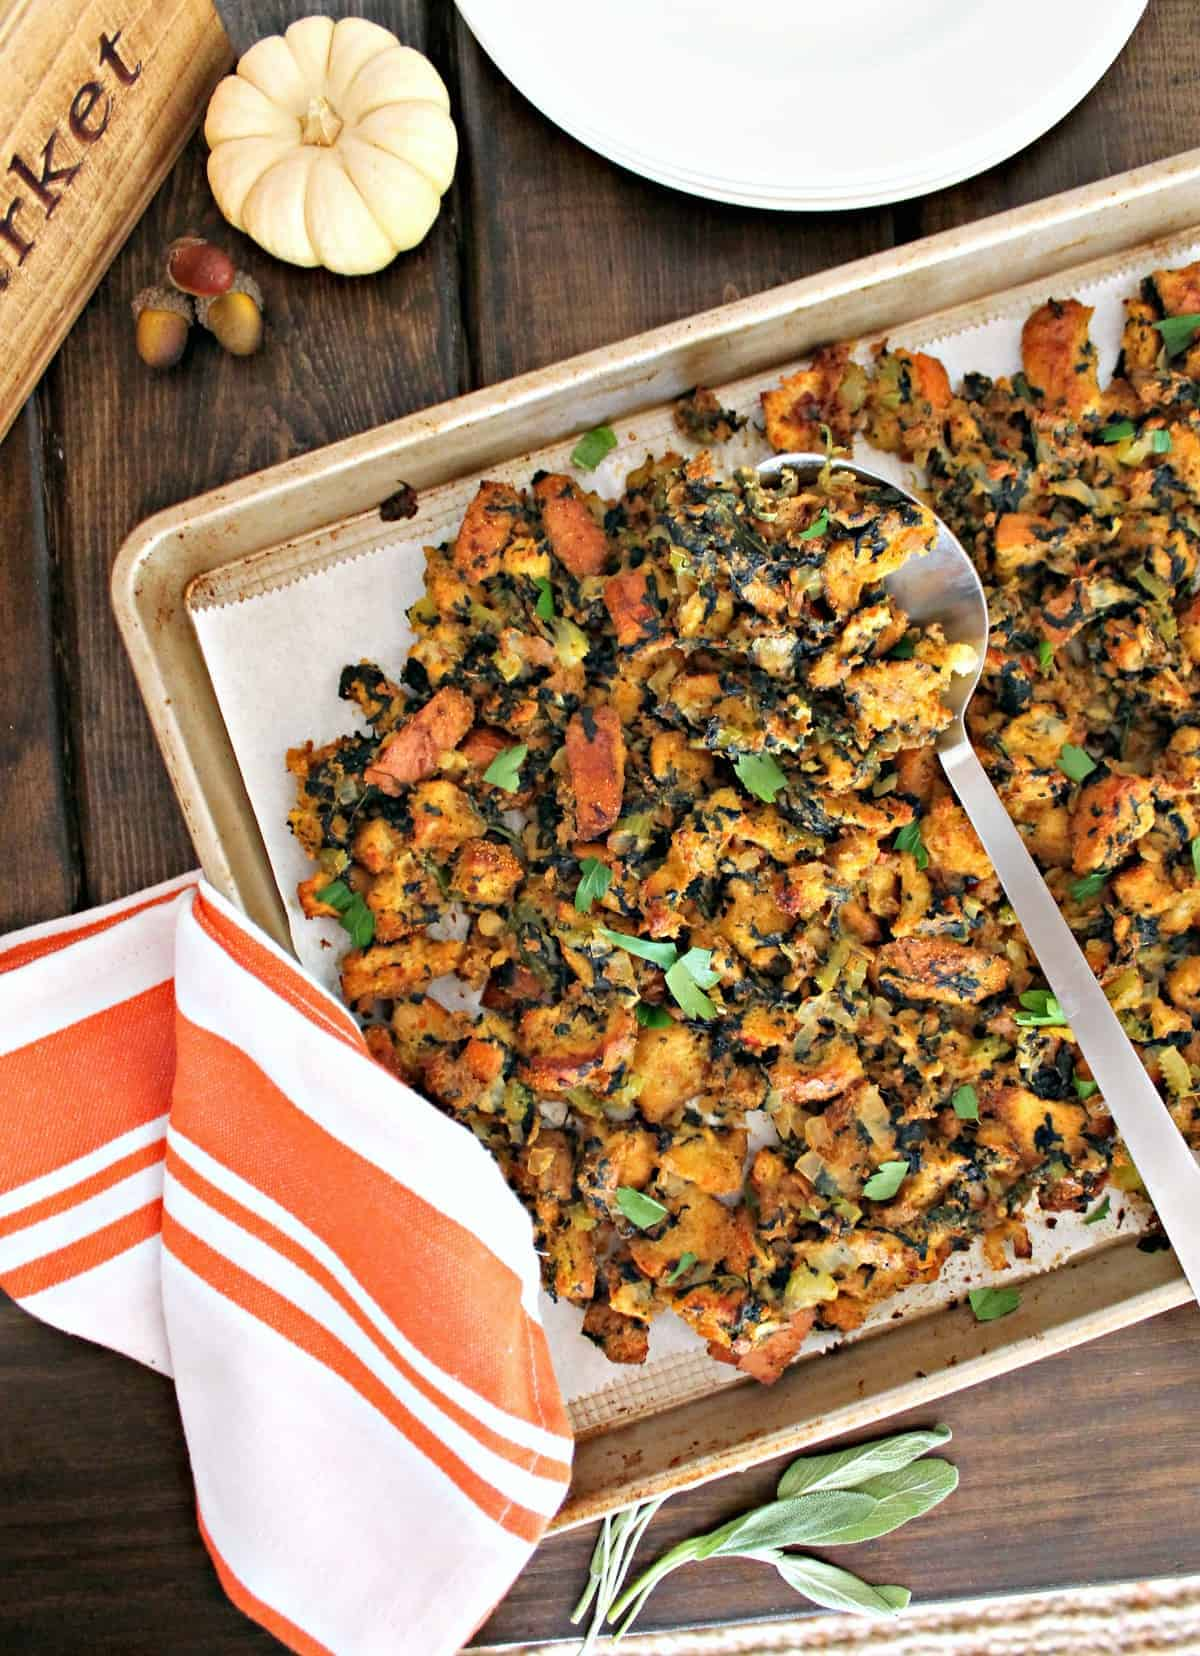 Vegetarian Sheet Pan Stuffing! If you've got a family who fights over the crispy parts of the Thanksgiving stuffing, this recipe will ensure everyone gets what they want! Baking on a sheet pan creates extra texture on this wonderful {vegetarian!} twist on a beloved holiday recipe.